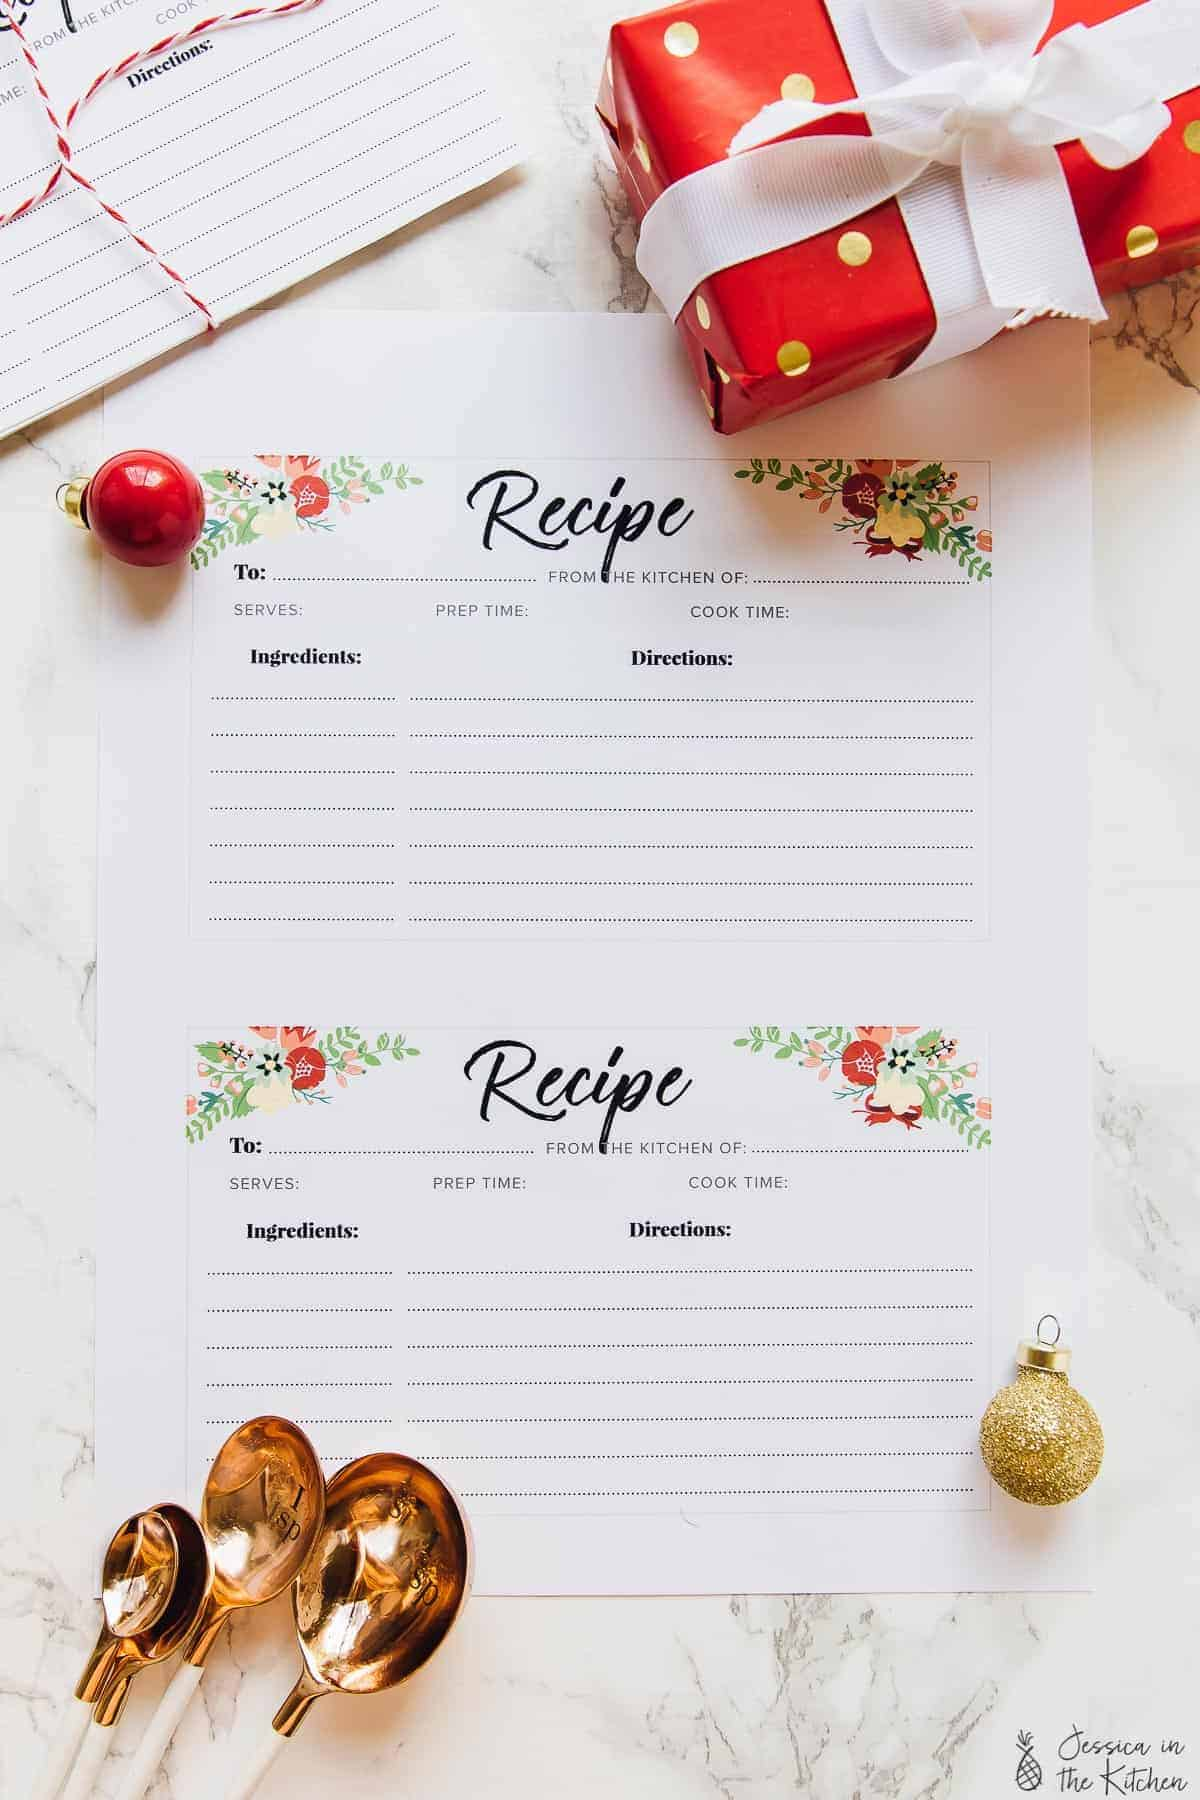 Two printed recipe cards on a table.